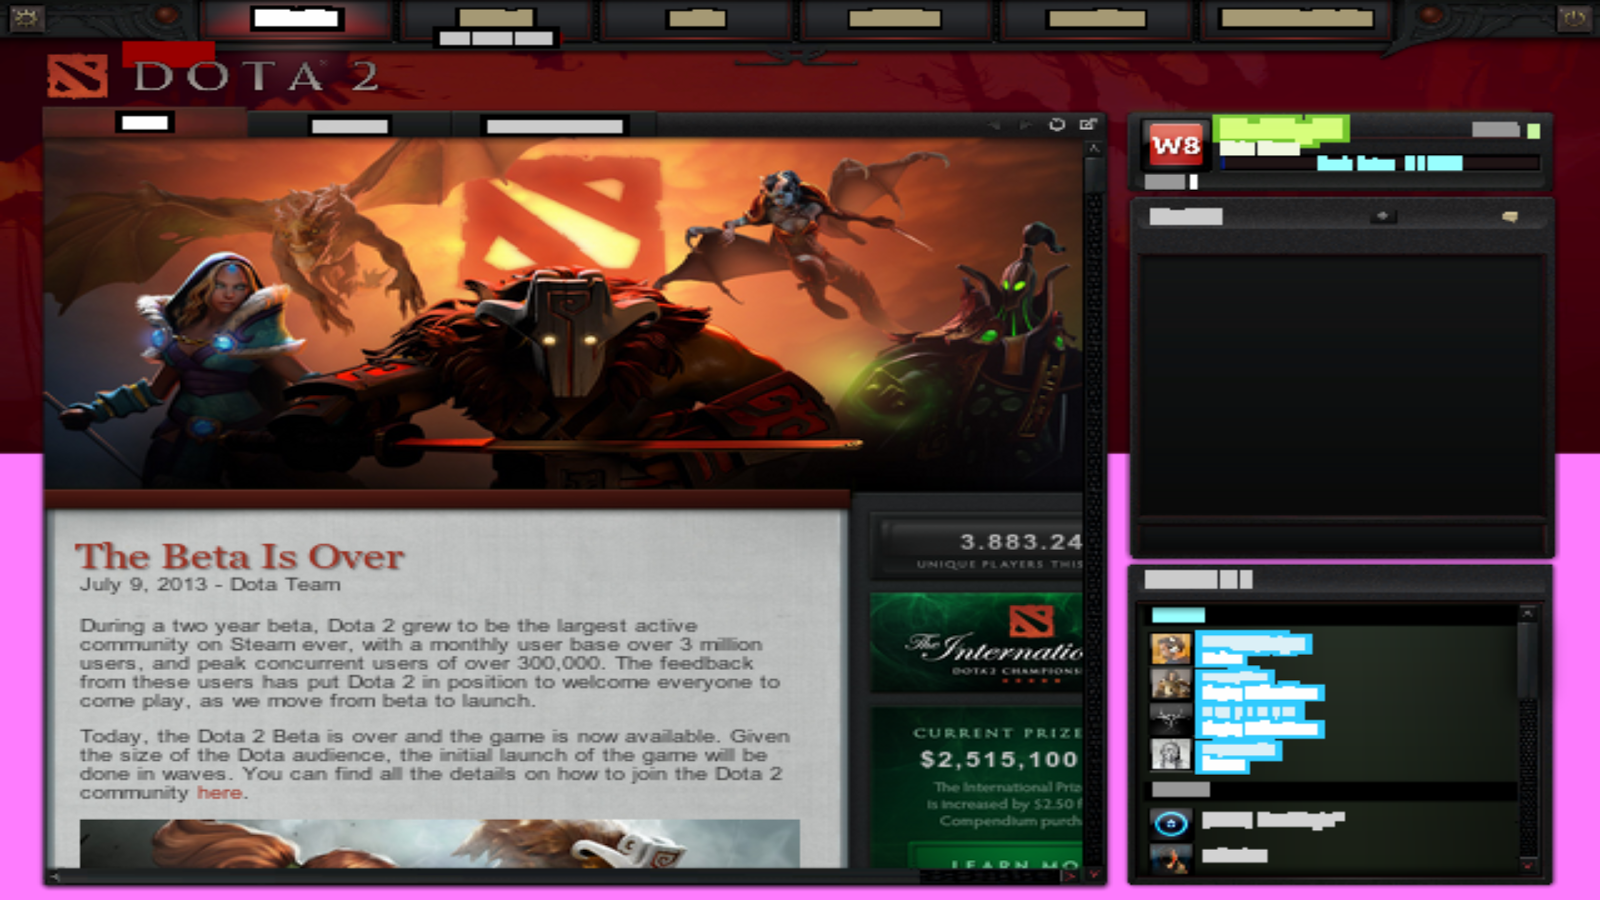 Dota 2 Test Available For Linux [Steam] | Being Hacked